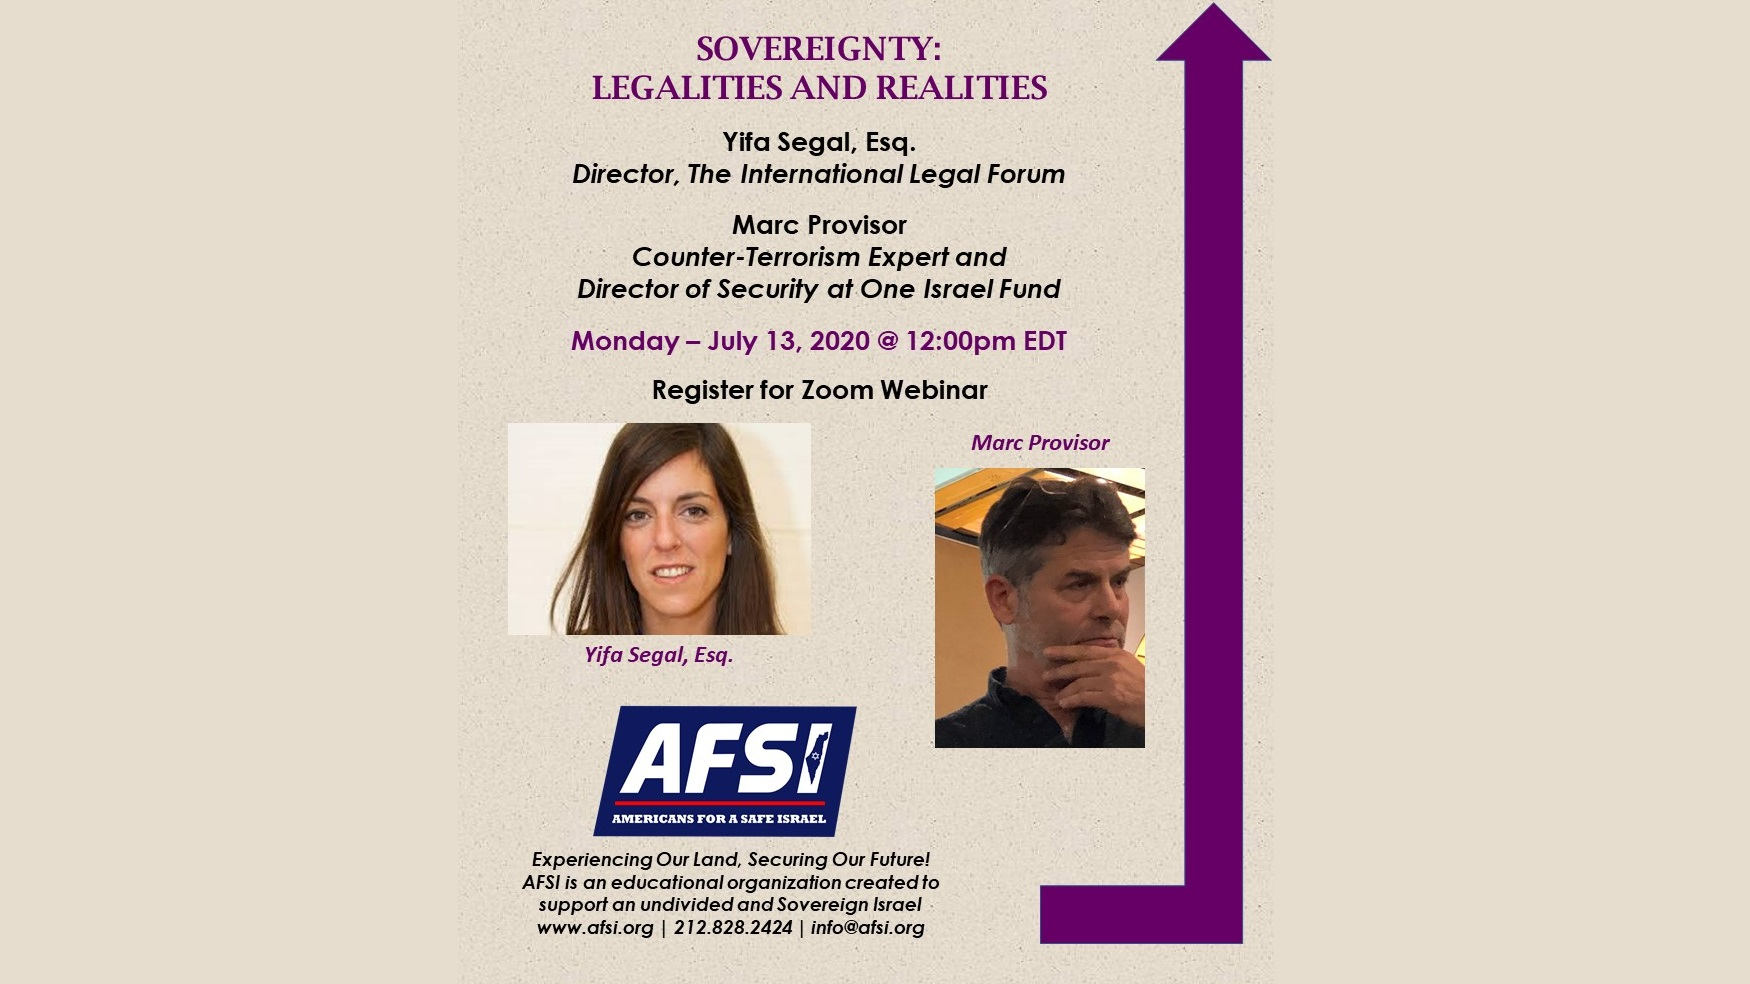 Sovereignty: Legalities and Realities